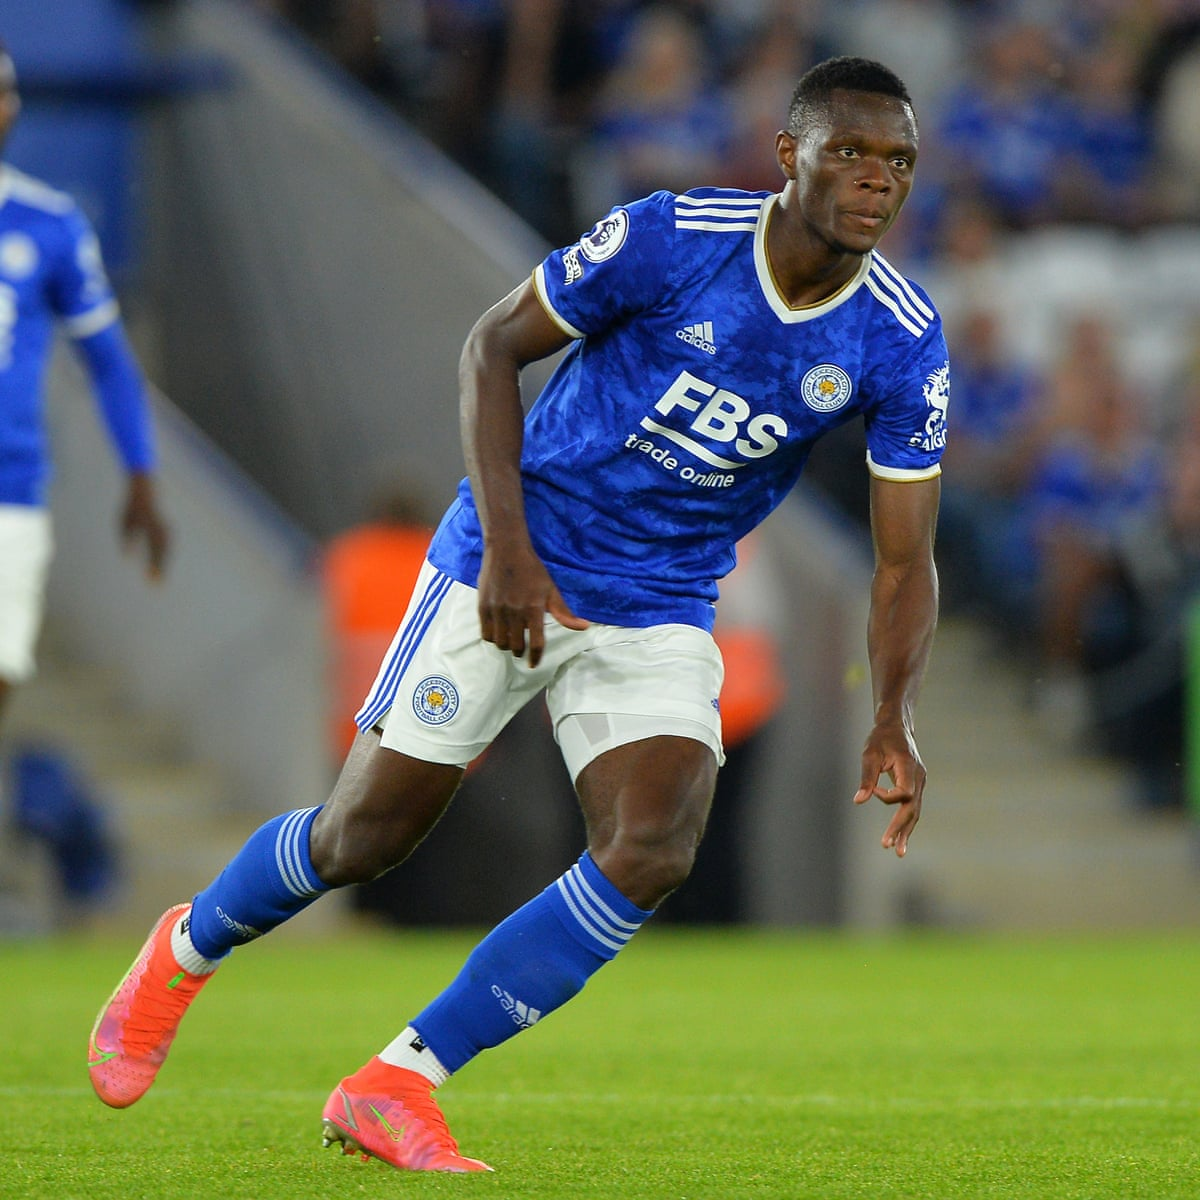 Brendan Rodgers expects Patson Daka to help Leicester rediscover best form    Leicester City   The Guardian